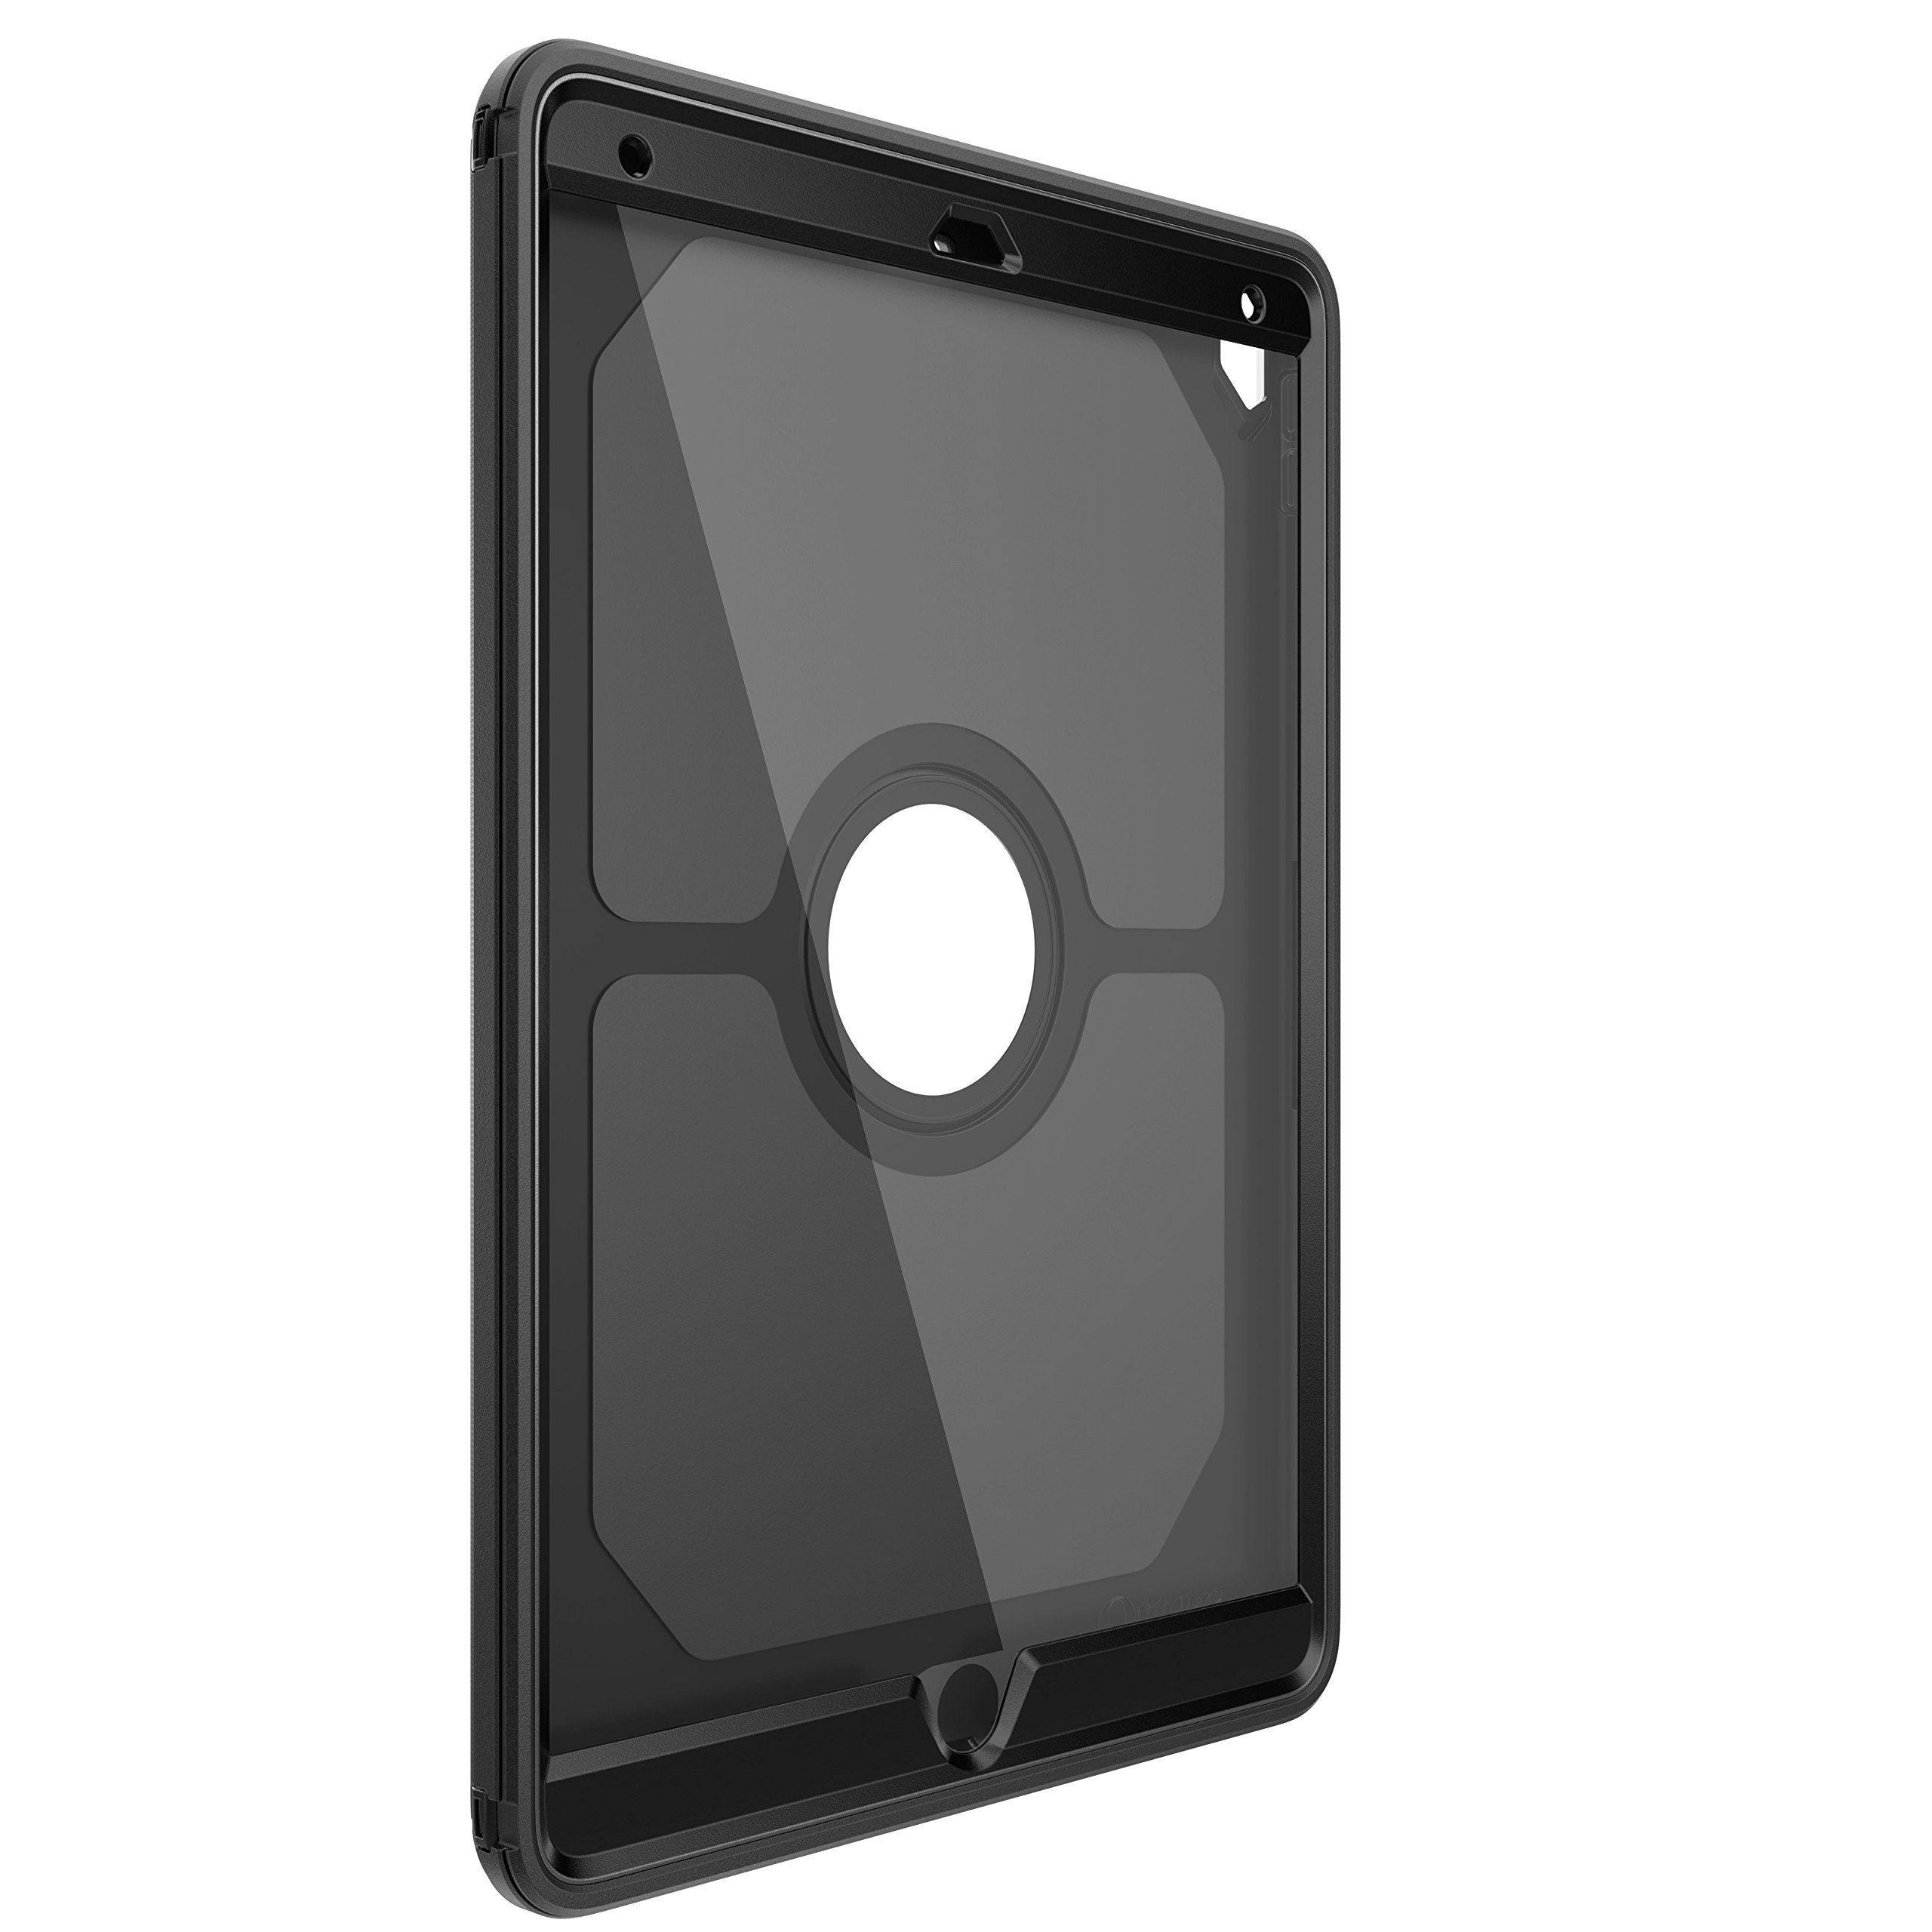 OtterBox DEFENDER SERIES Case for iPad Pro 10.5'' & iPad Air (3rd Generation) - Retail Packaging - BLACK by OtterBox (Image #11)